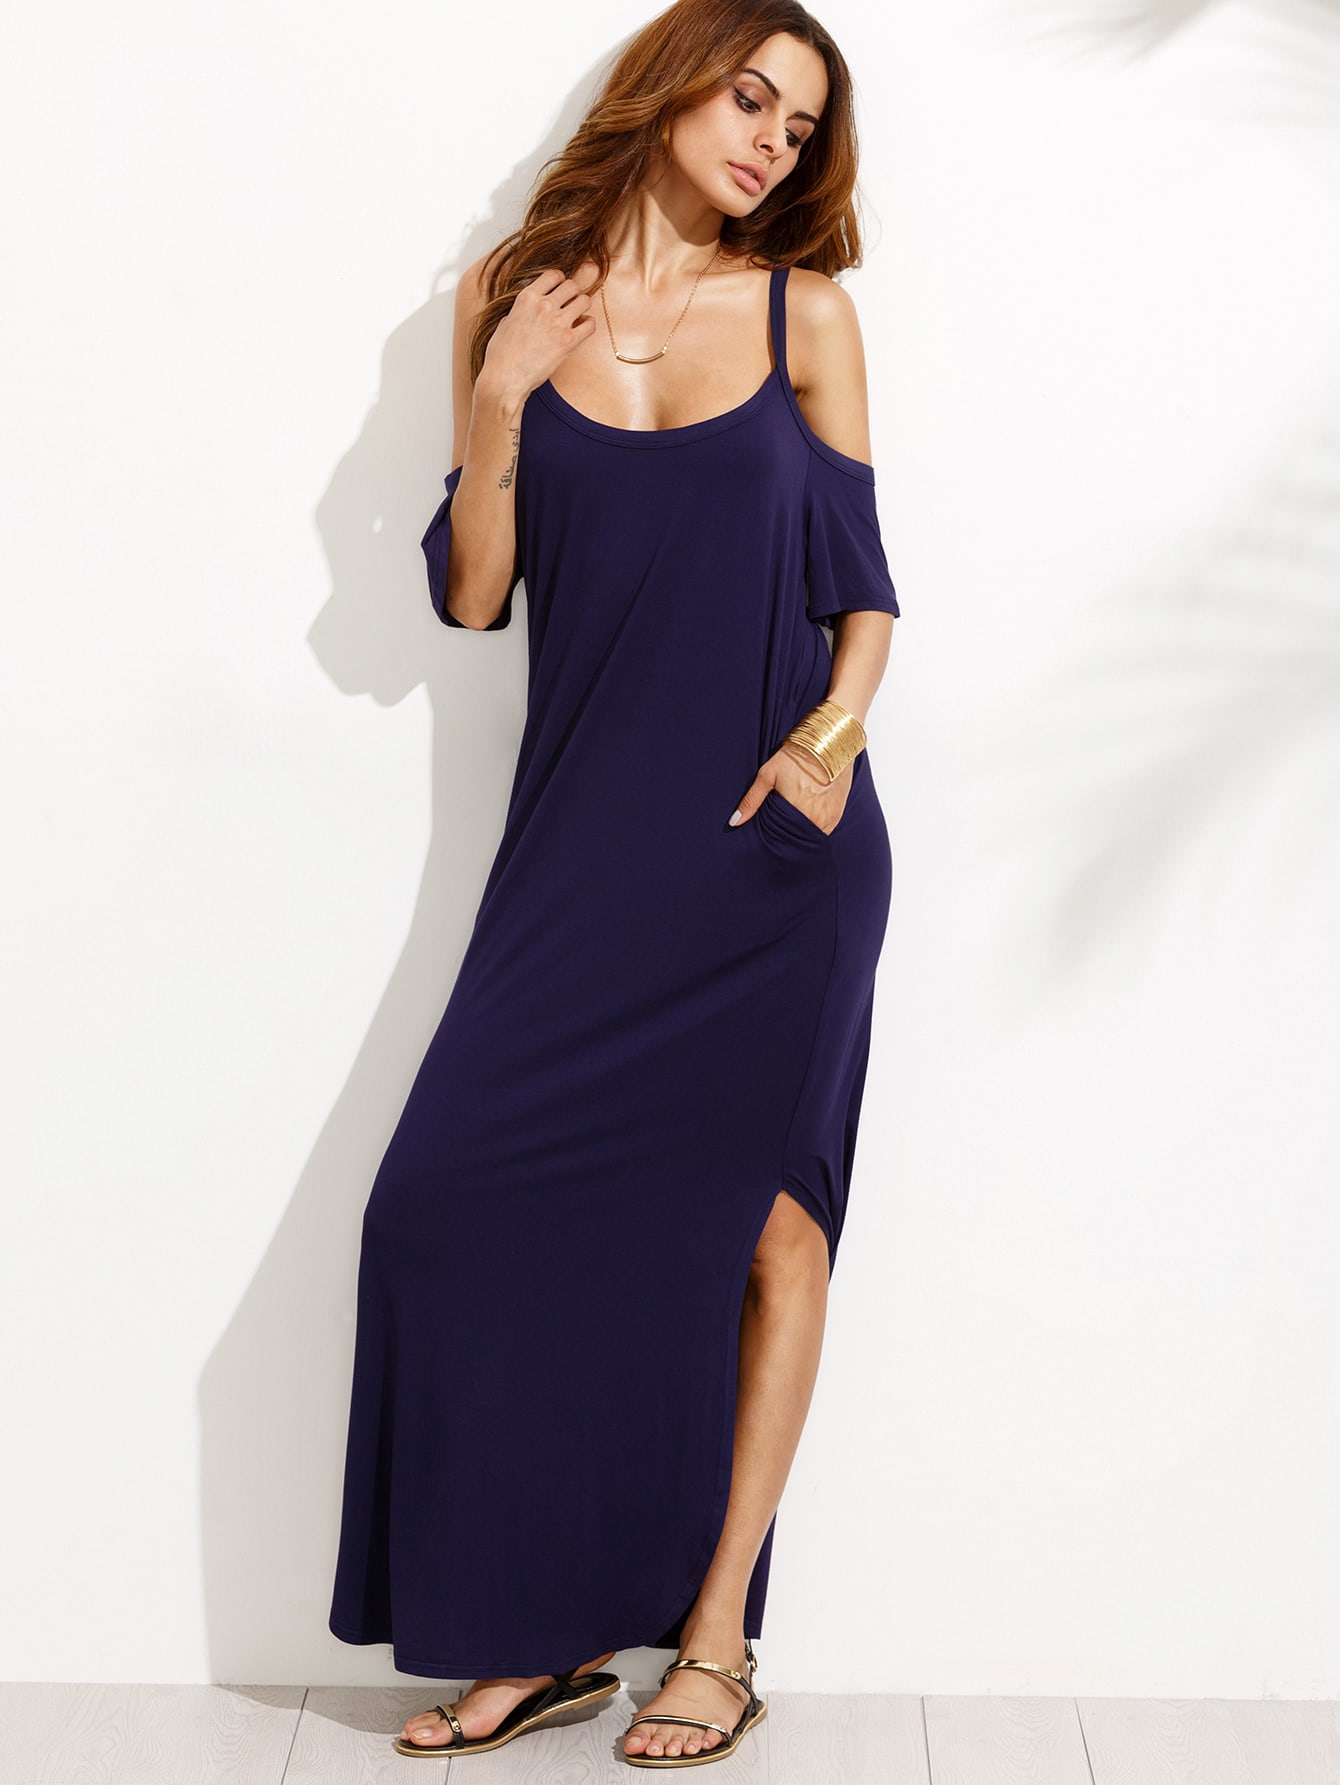 Pocket Open Shoulder Split Full Length Dress pocket open shoulder split full length dress